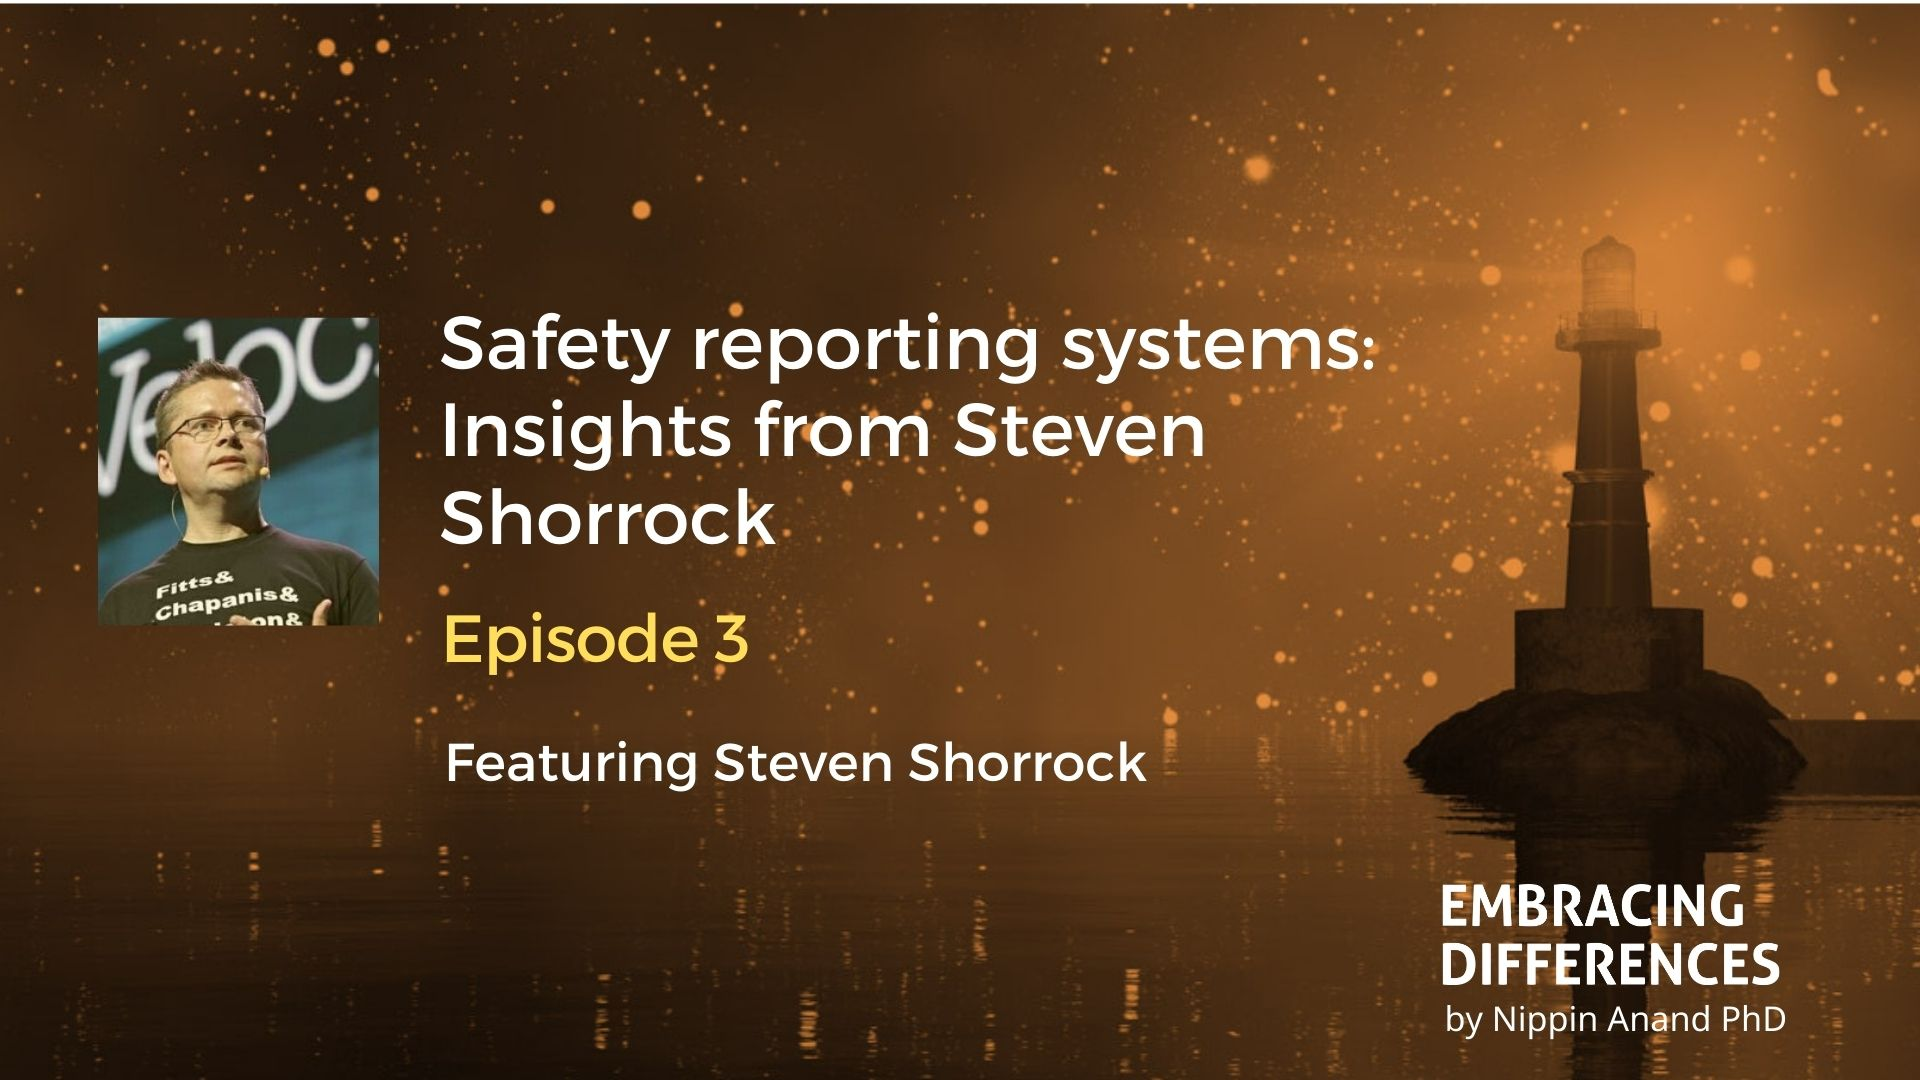 Safety reporting systems: Insights from Steven Shorrock